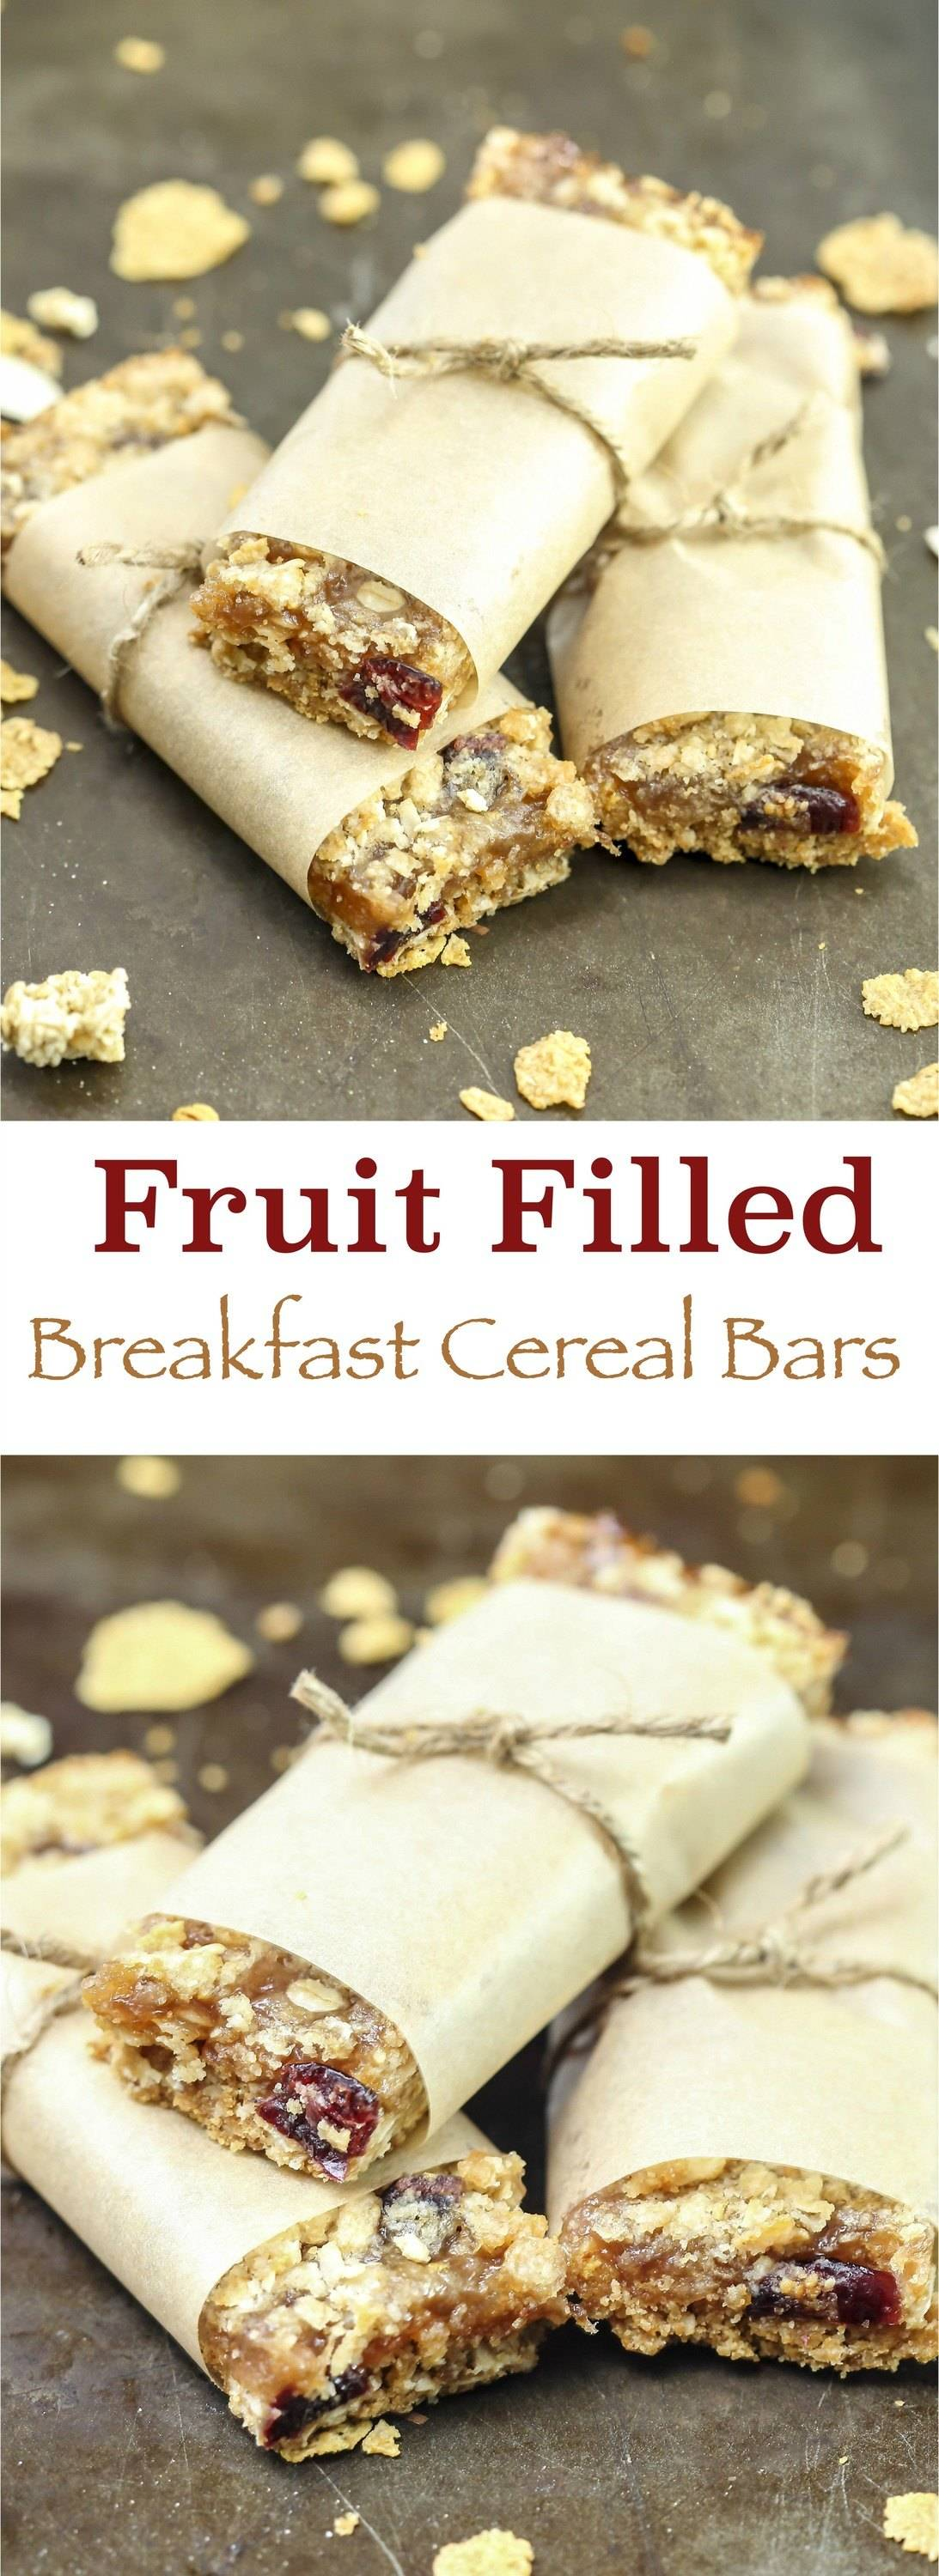 These homemade fruit filled breakfast cereal bars are a great way to start your mornings with a boost. Packed full of fiber, dried fruit, jam, nuts, and flavor to fuel your day on the go! This simple recipe also makes great healthy school snacks for kids!